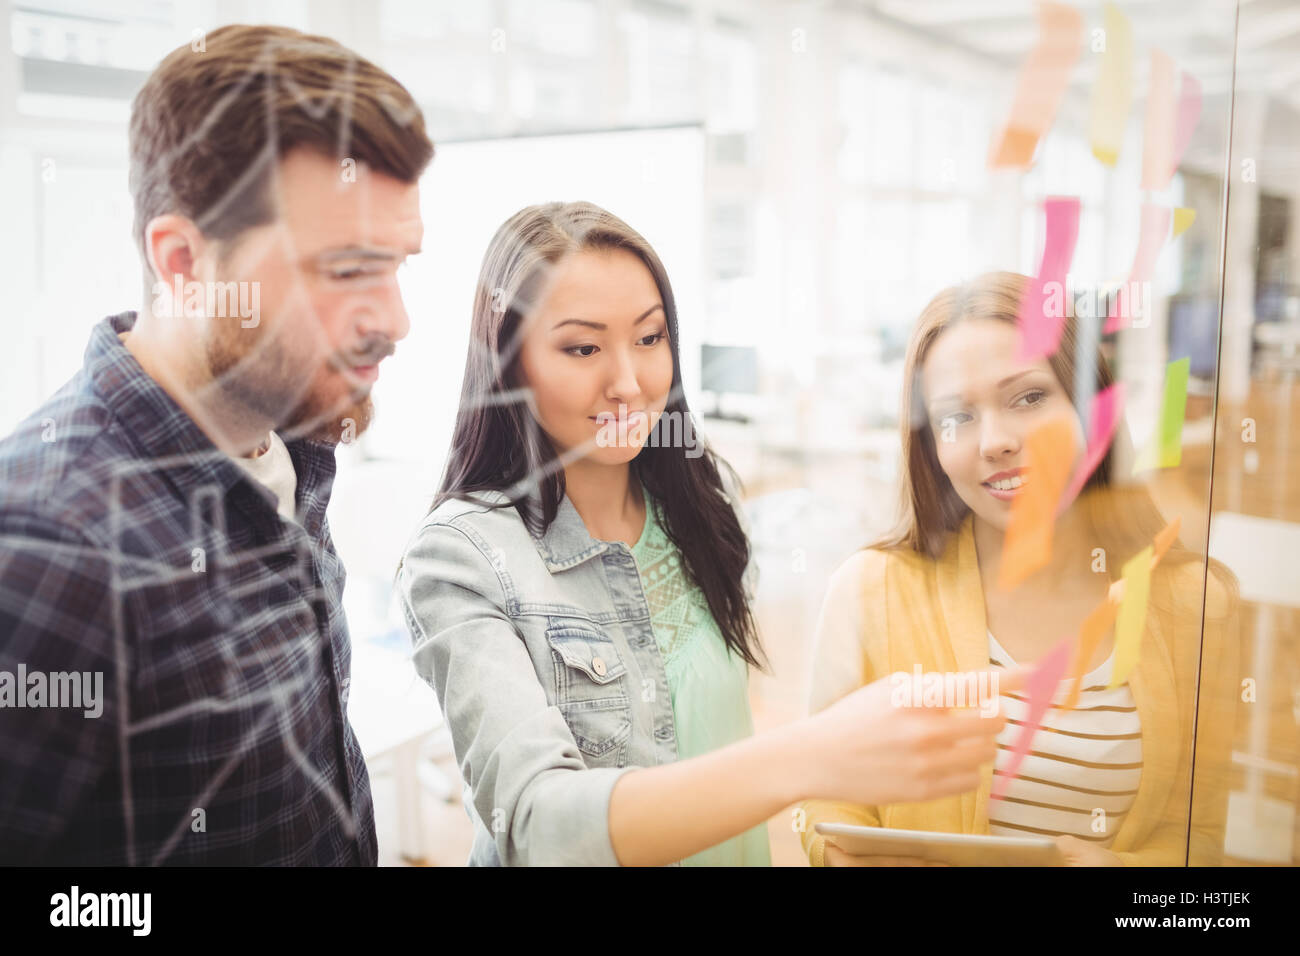 Coworkers looking at sticky notes pointed by female photo editor - Stock Image